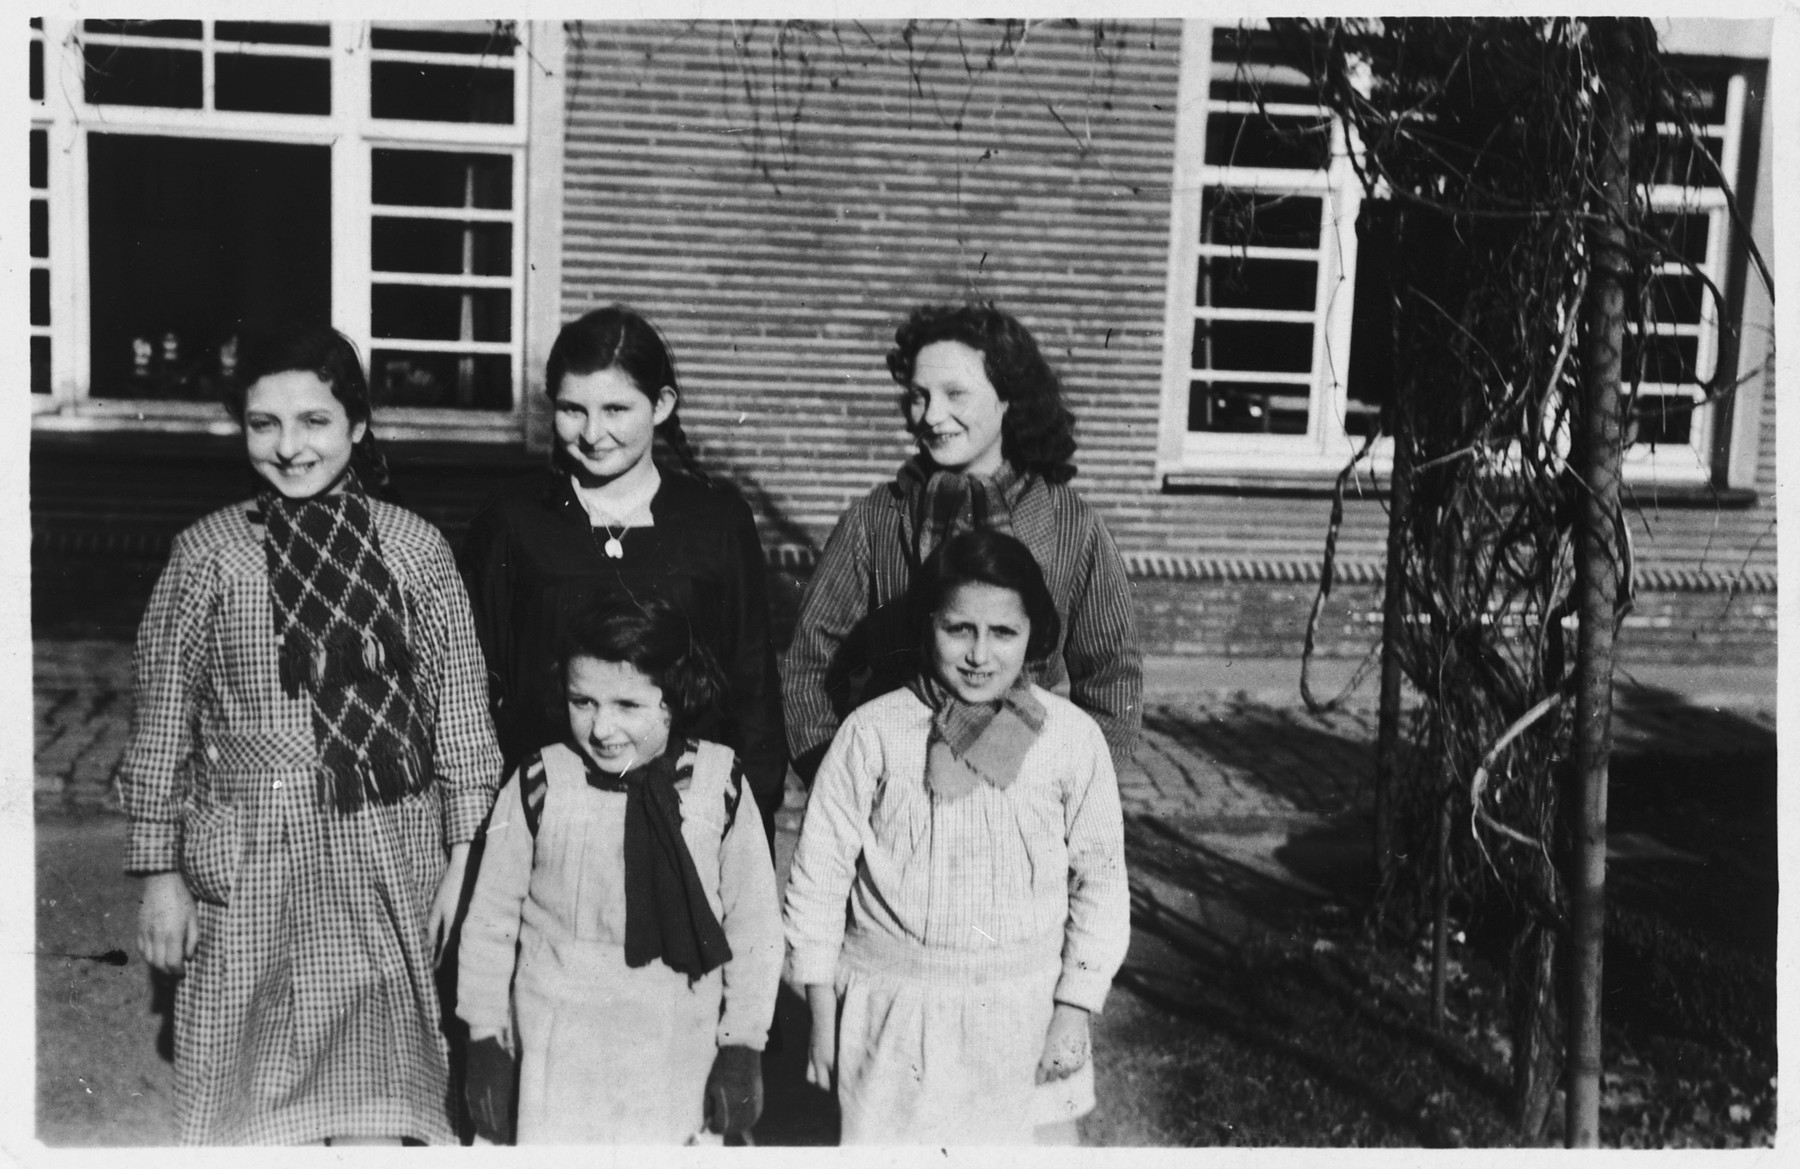 """Group portrait of Jewish girls living in hiding at the """"Our Lady of Seven Sorrows"""" convent in Ruiselede, Belgium.  Pictured in front from left to right are: Betty and Charlotte Mendelowicz.  Behind them are Flora Mendelowicz, Ruth Wallach and Paulette (last name unknown)."""